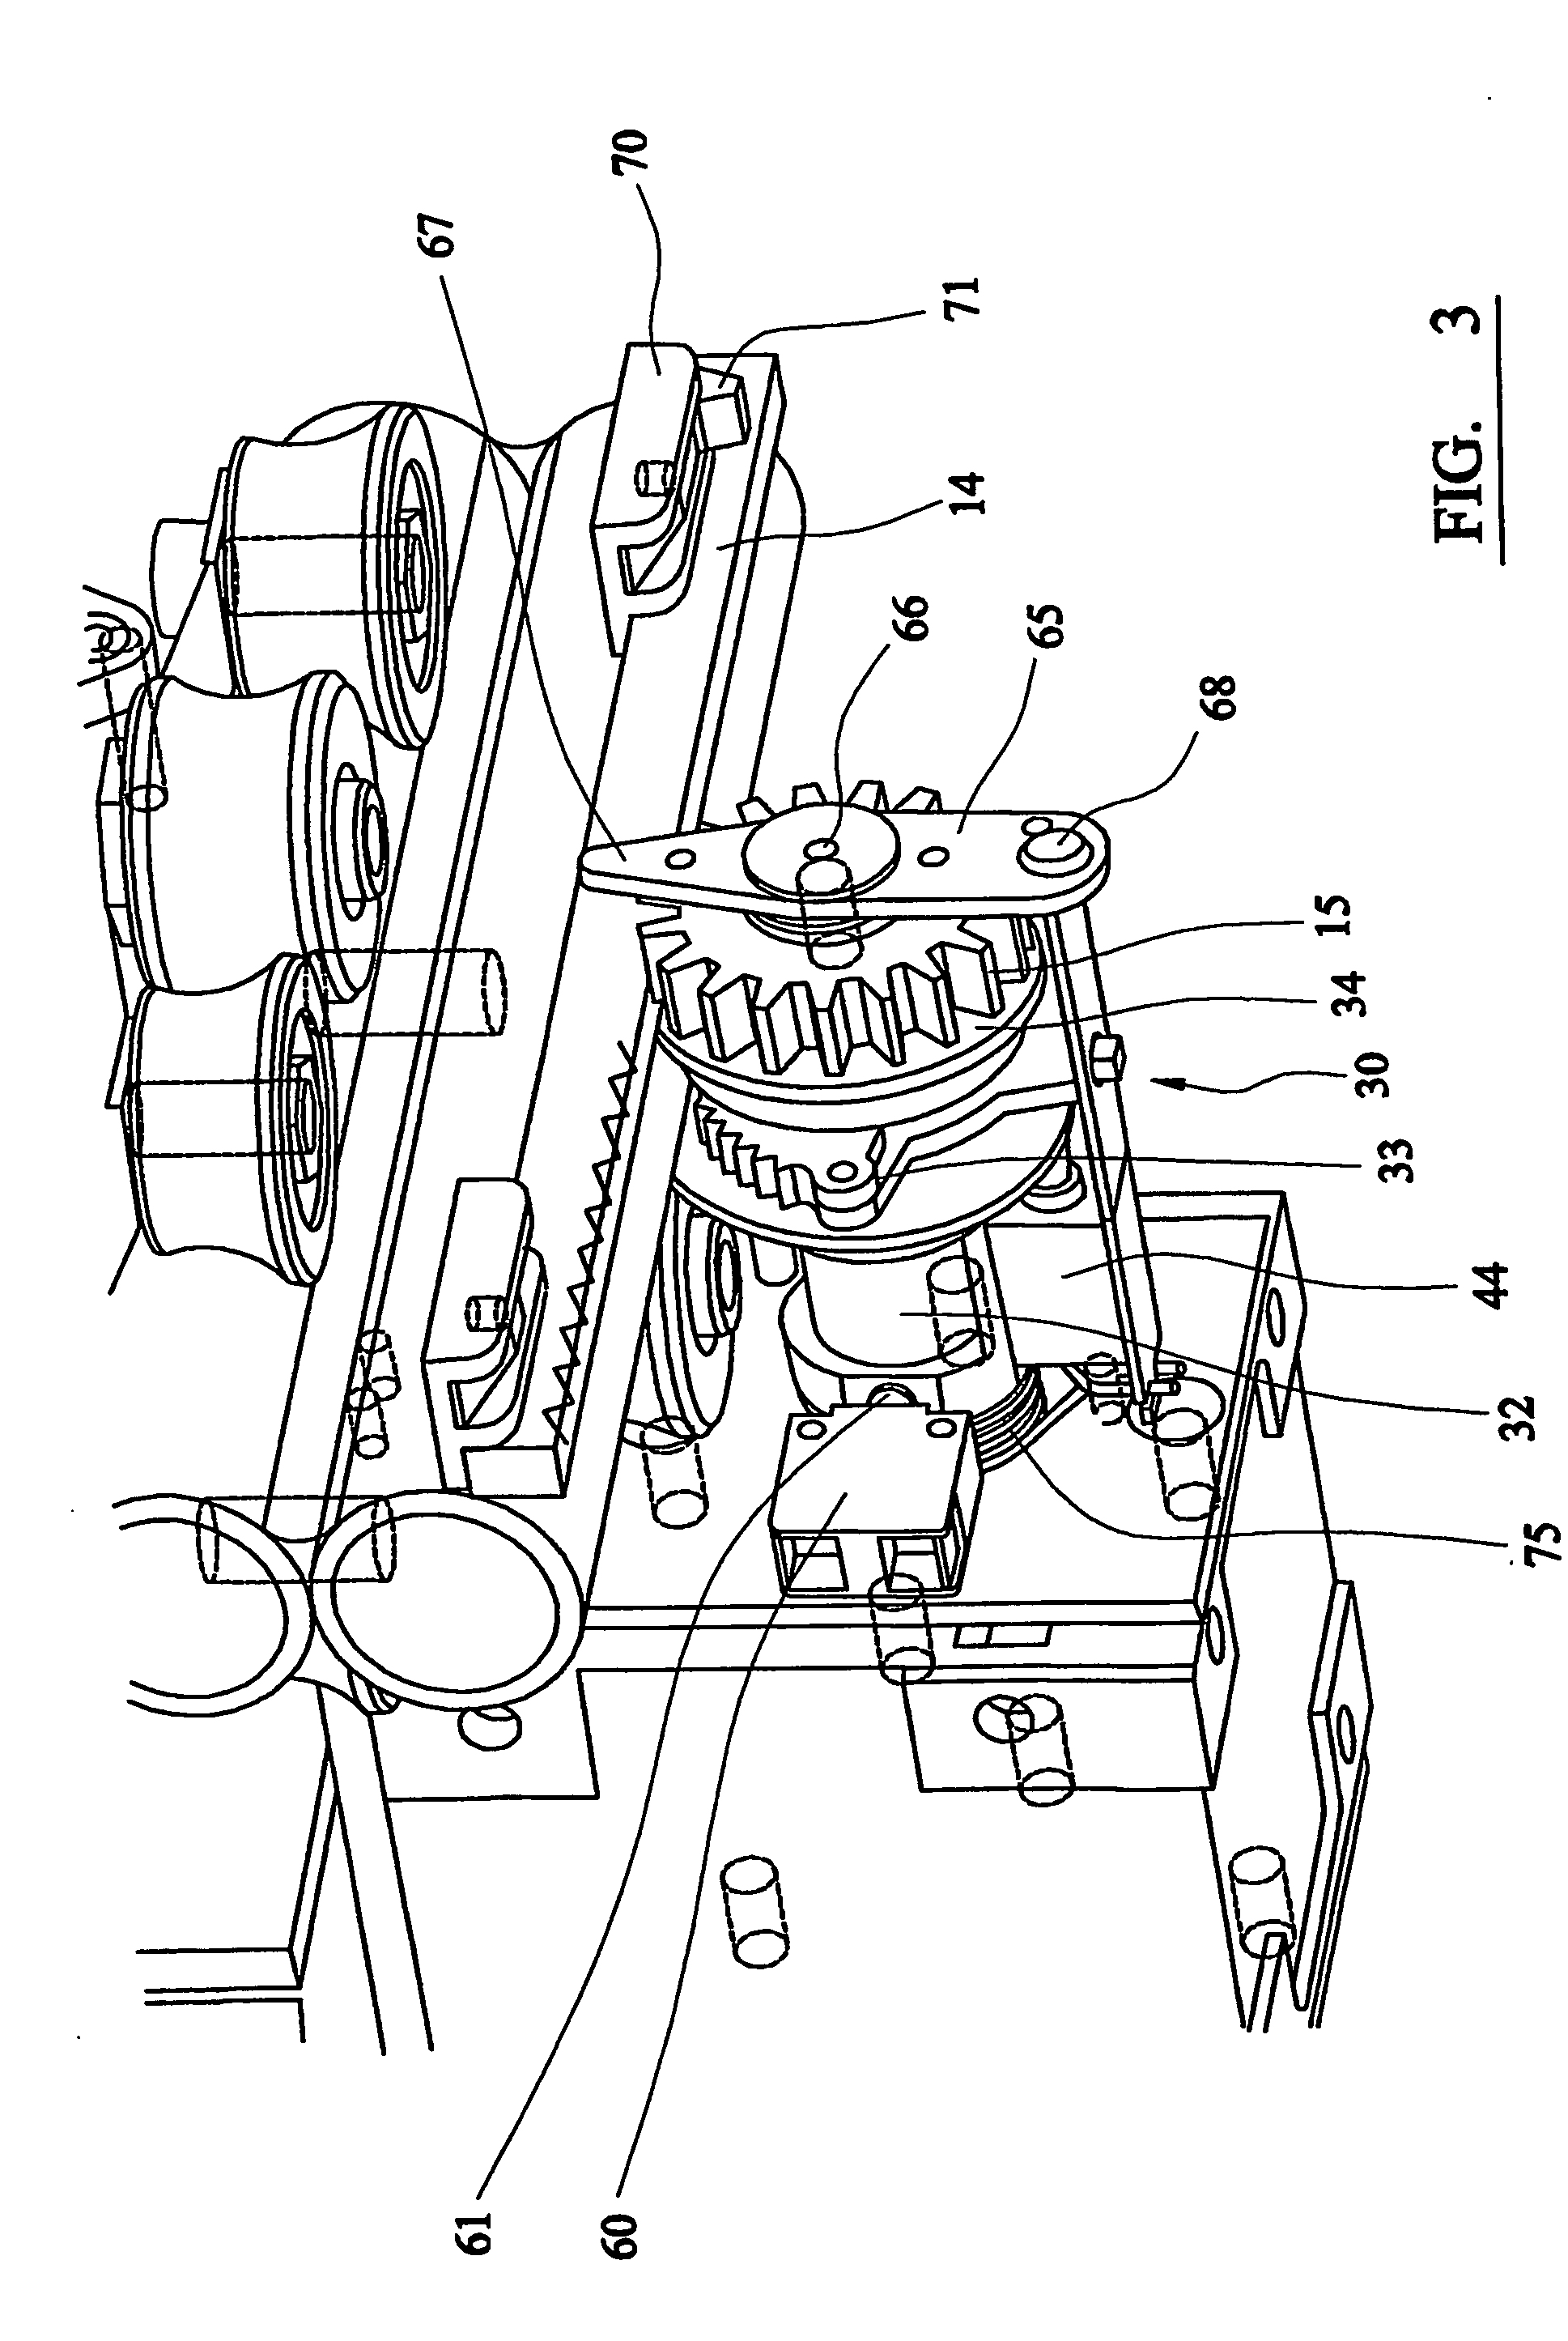 patent us safety device for stairlifts patents patent drawing